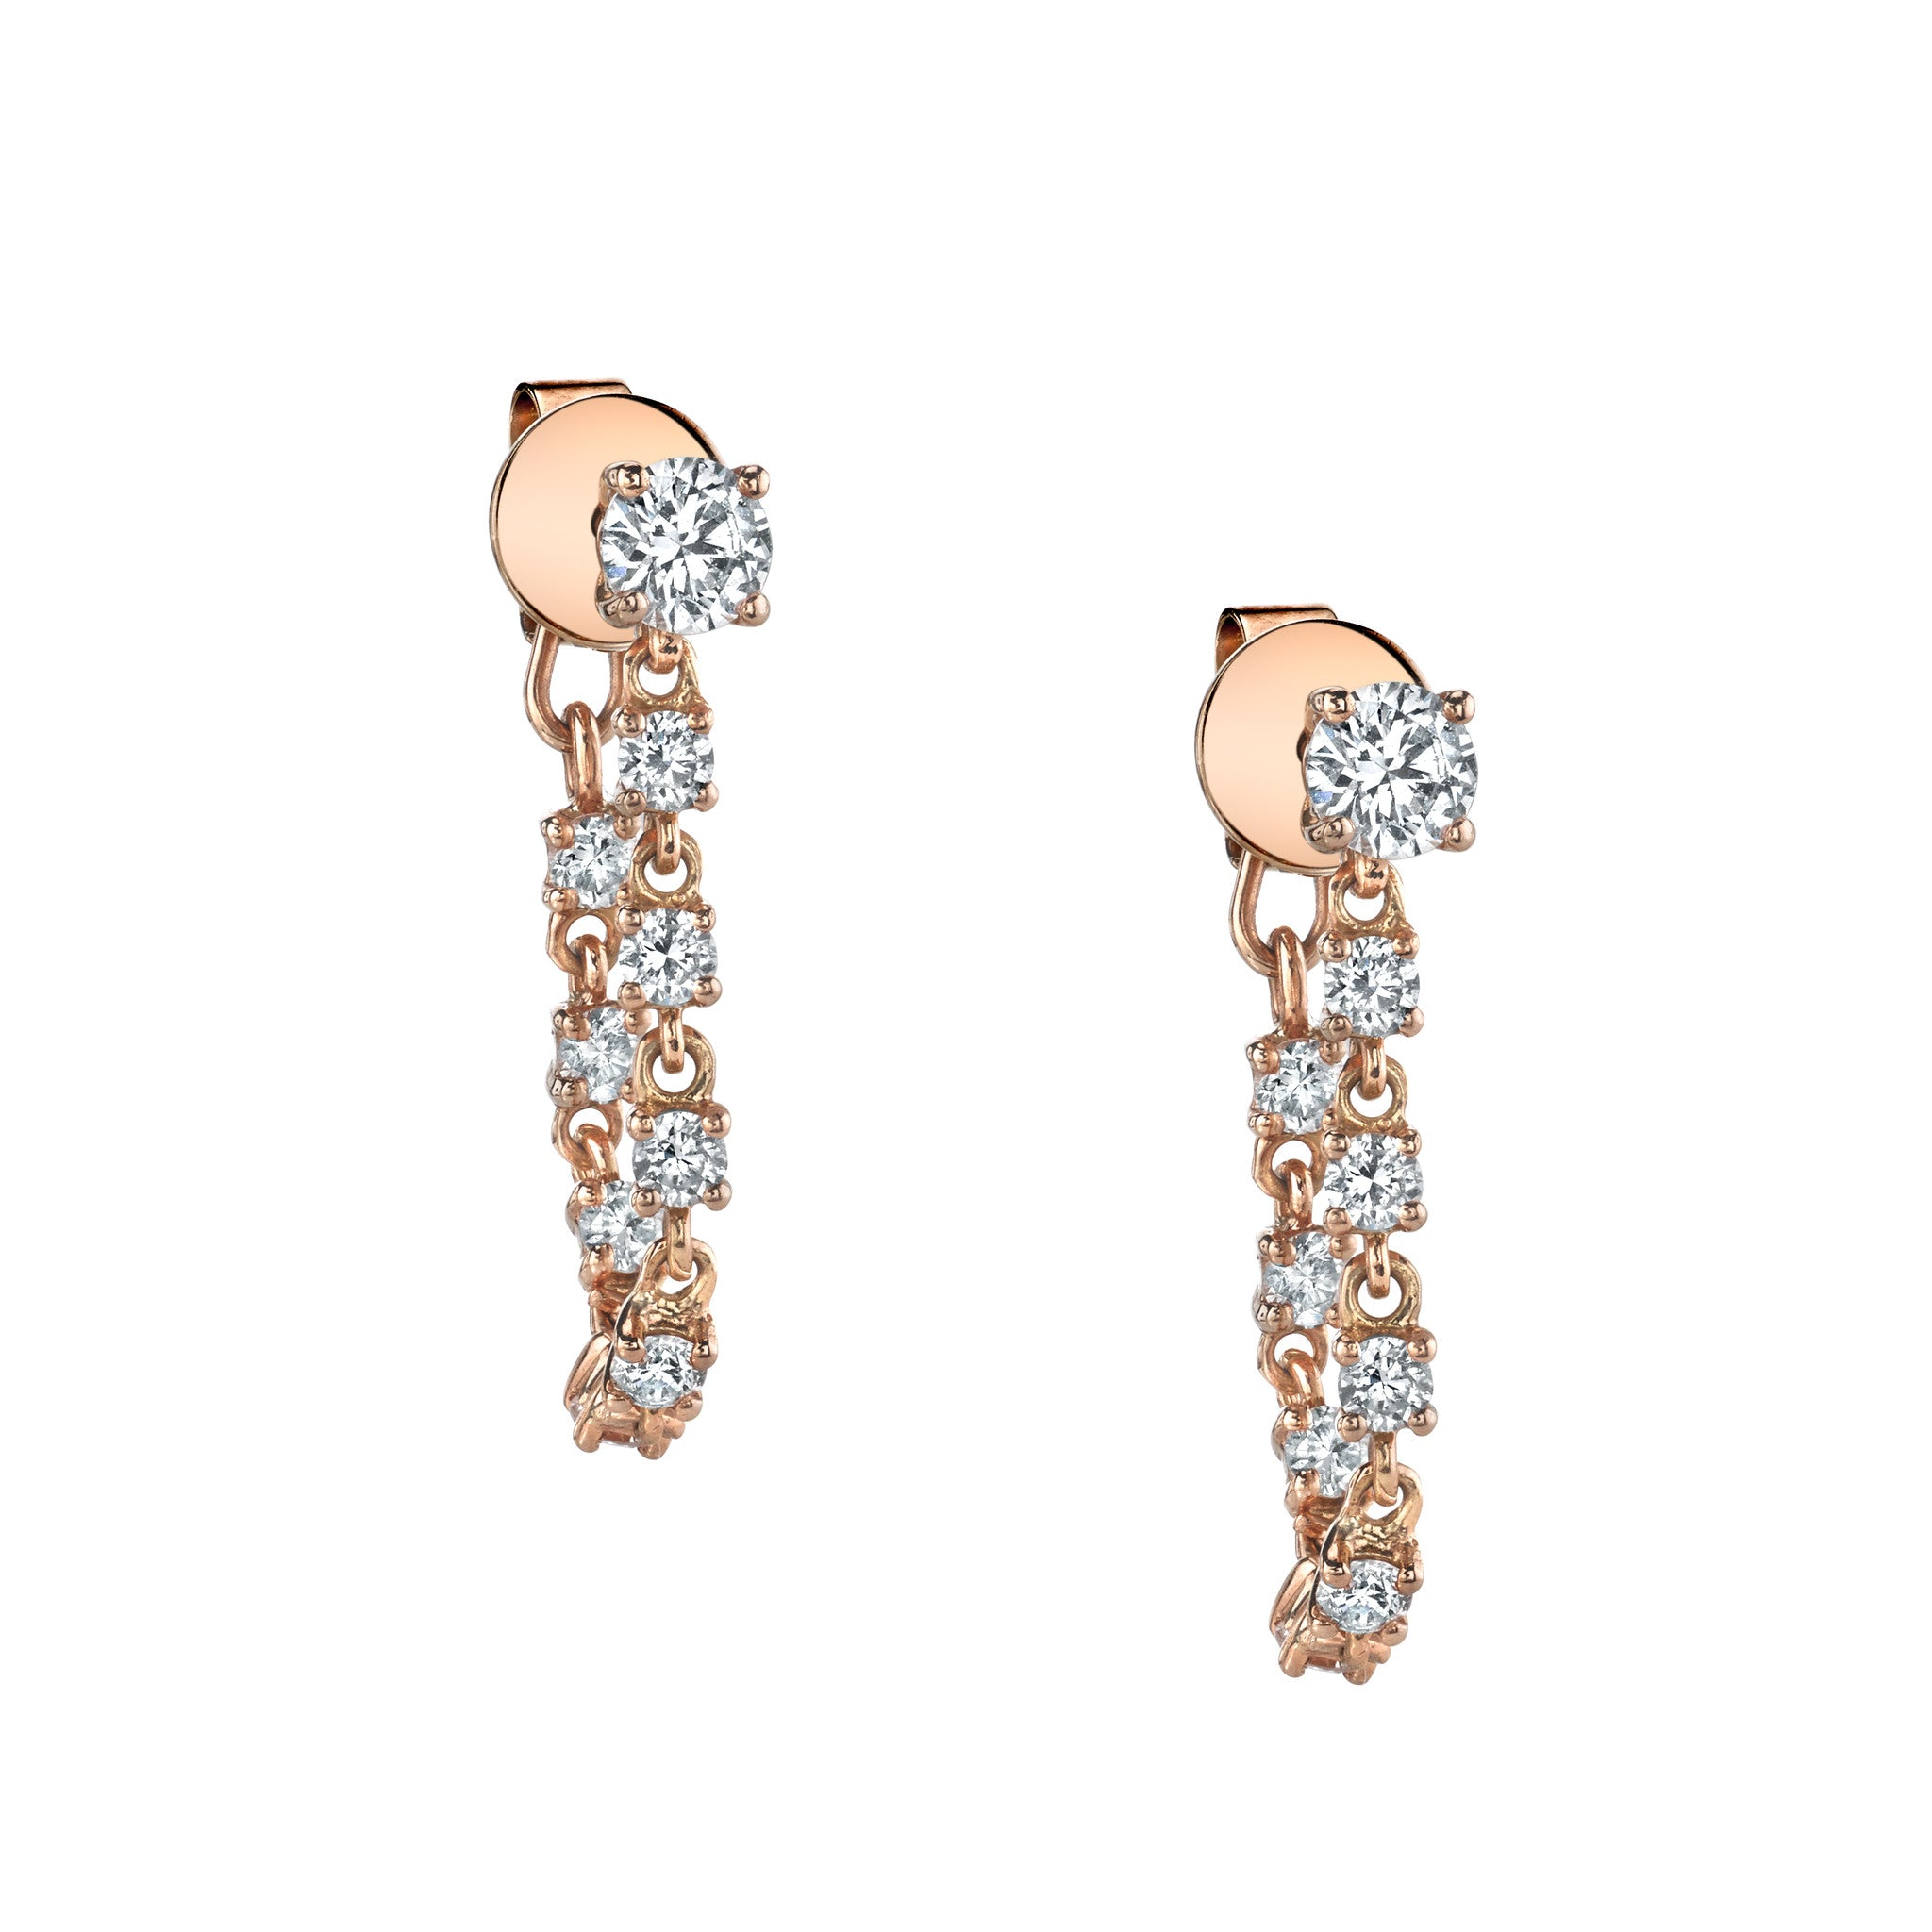 diamond studs pin earrings sterling silver real